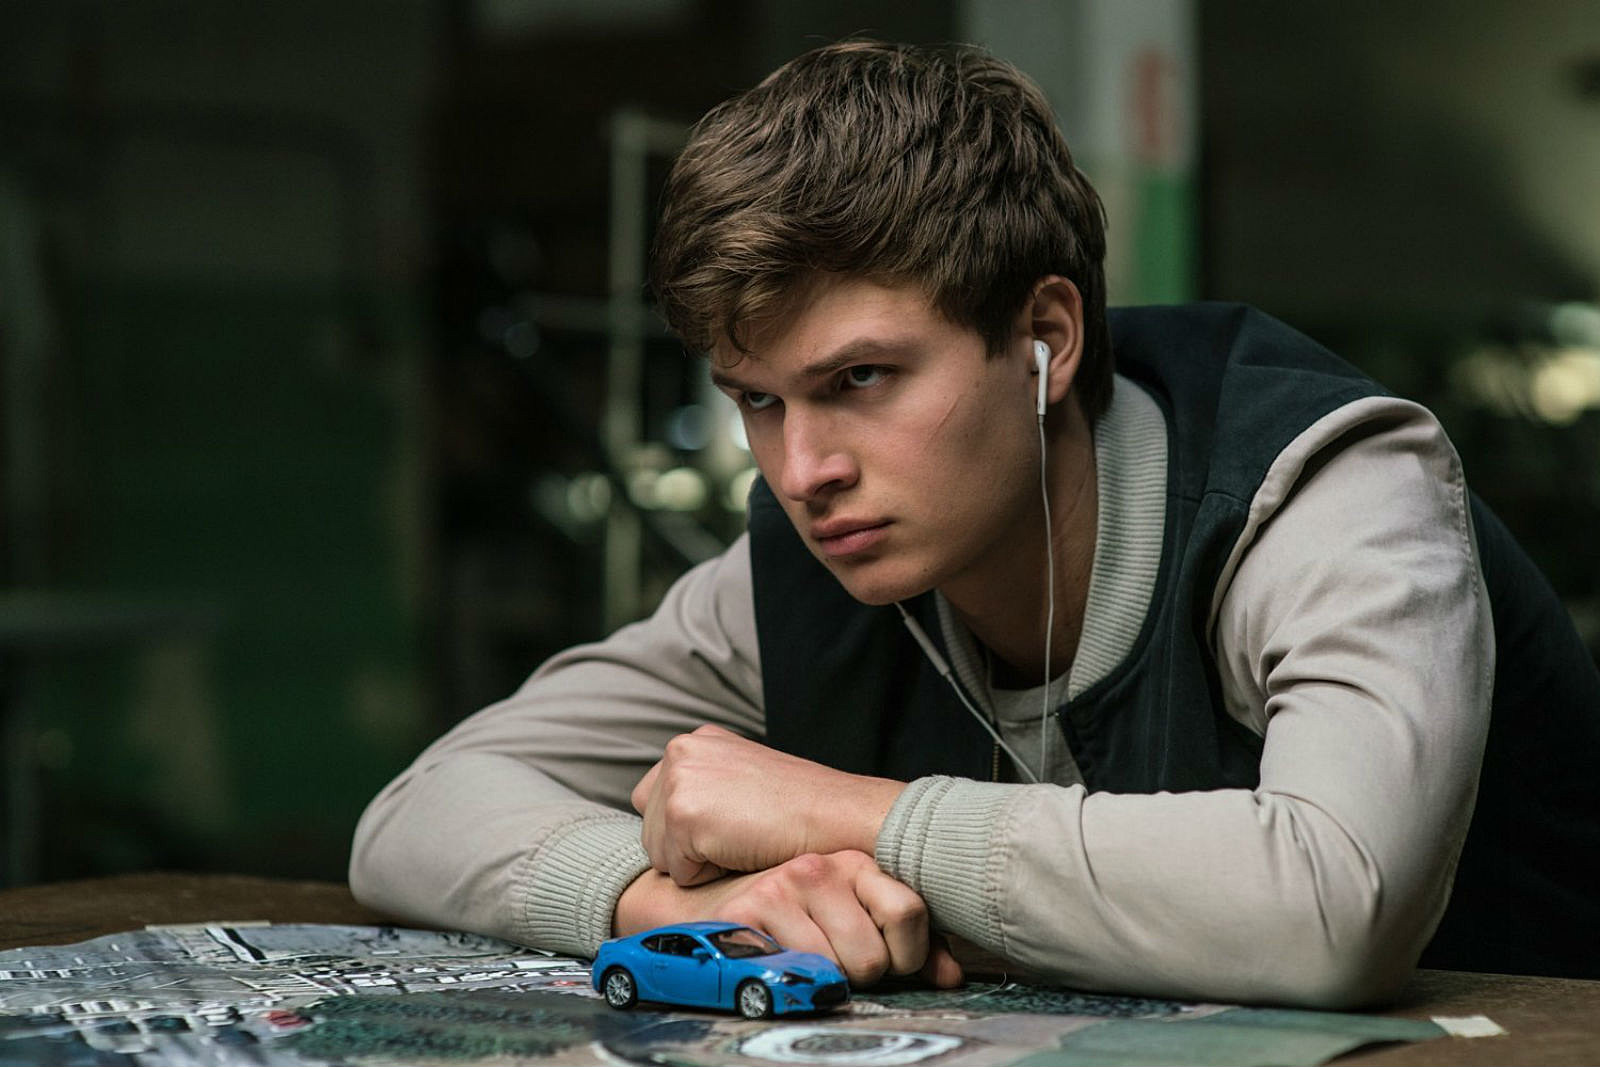 The 'Baby Driver' Trailer Is Even Better Starring the Snapchat Hot Dog